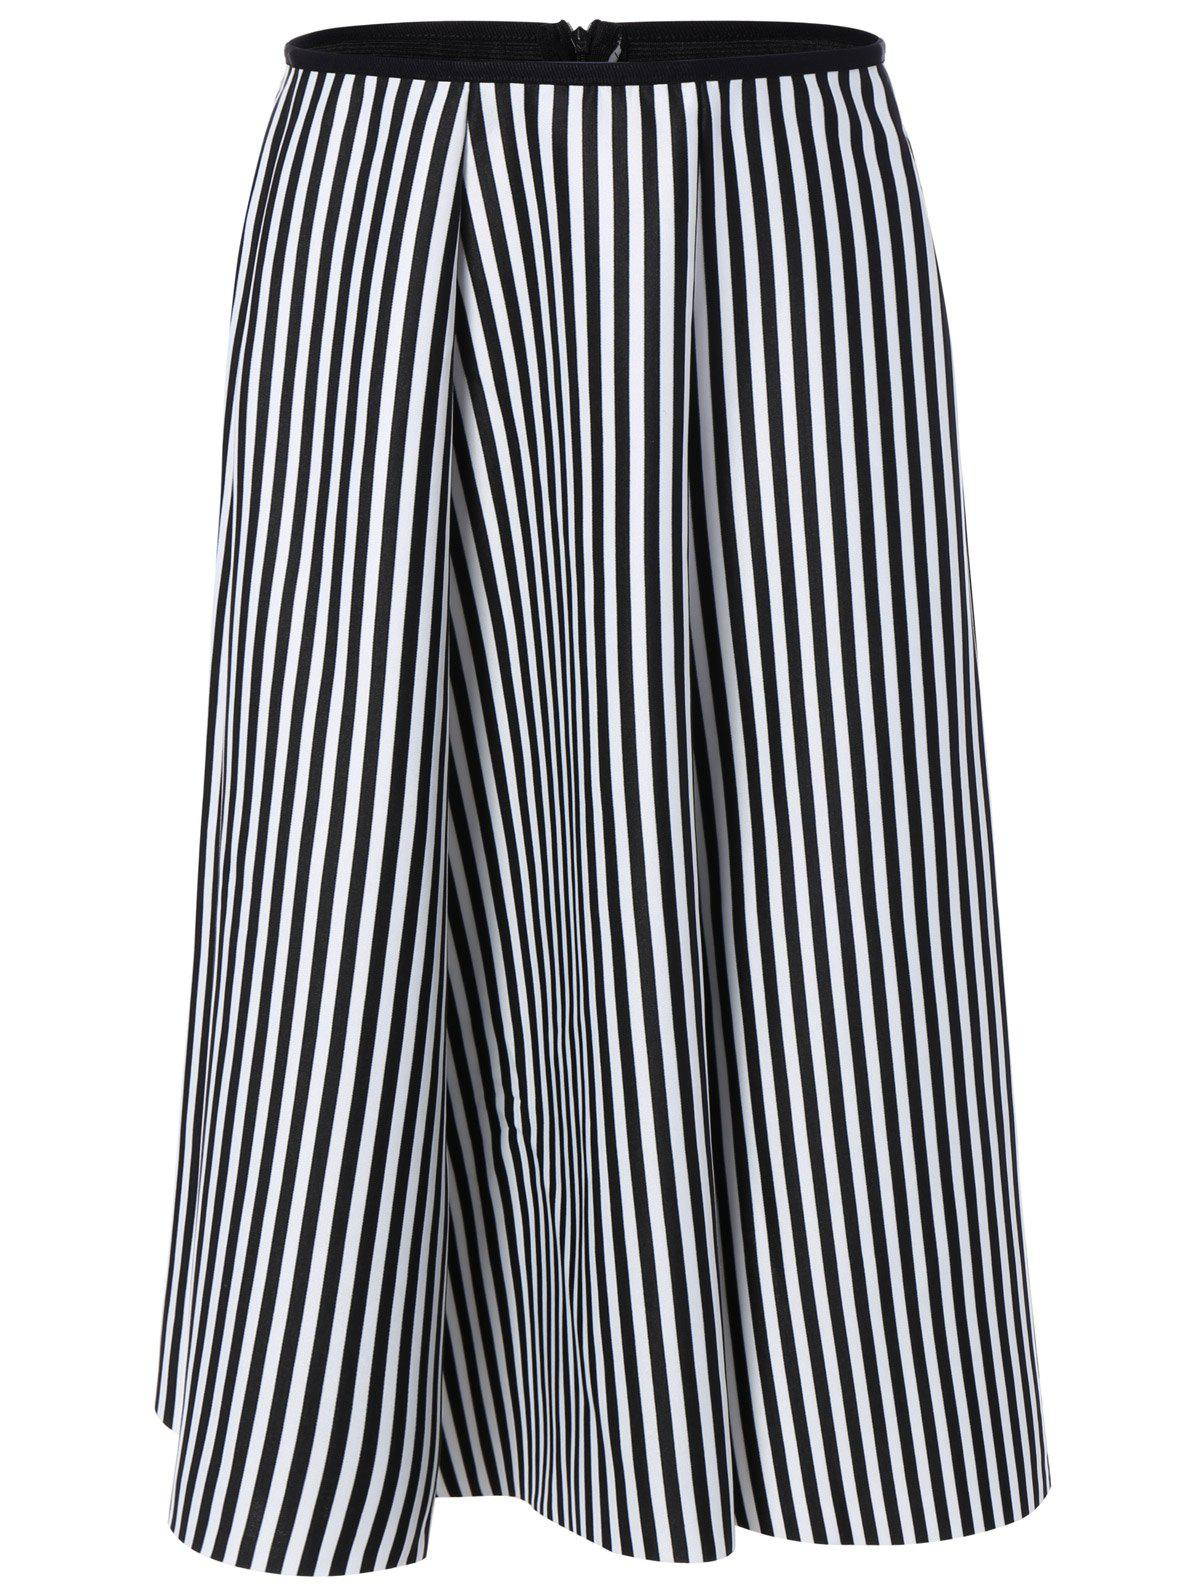 Stripe High Waisted Midi Skirt high waisted bodycon midi skirt